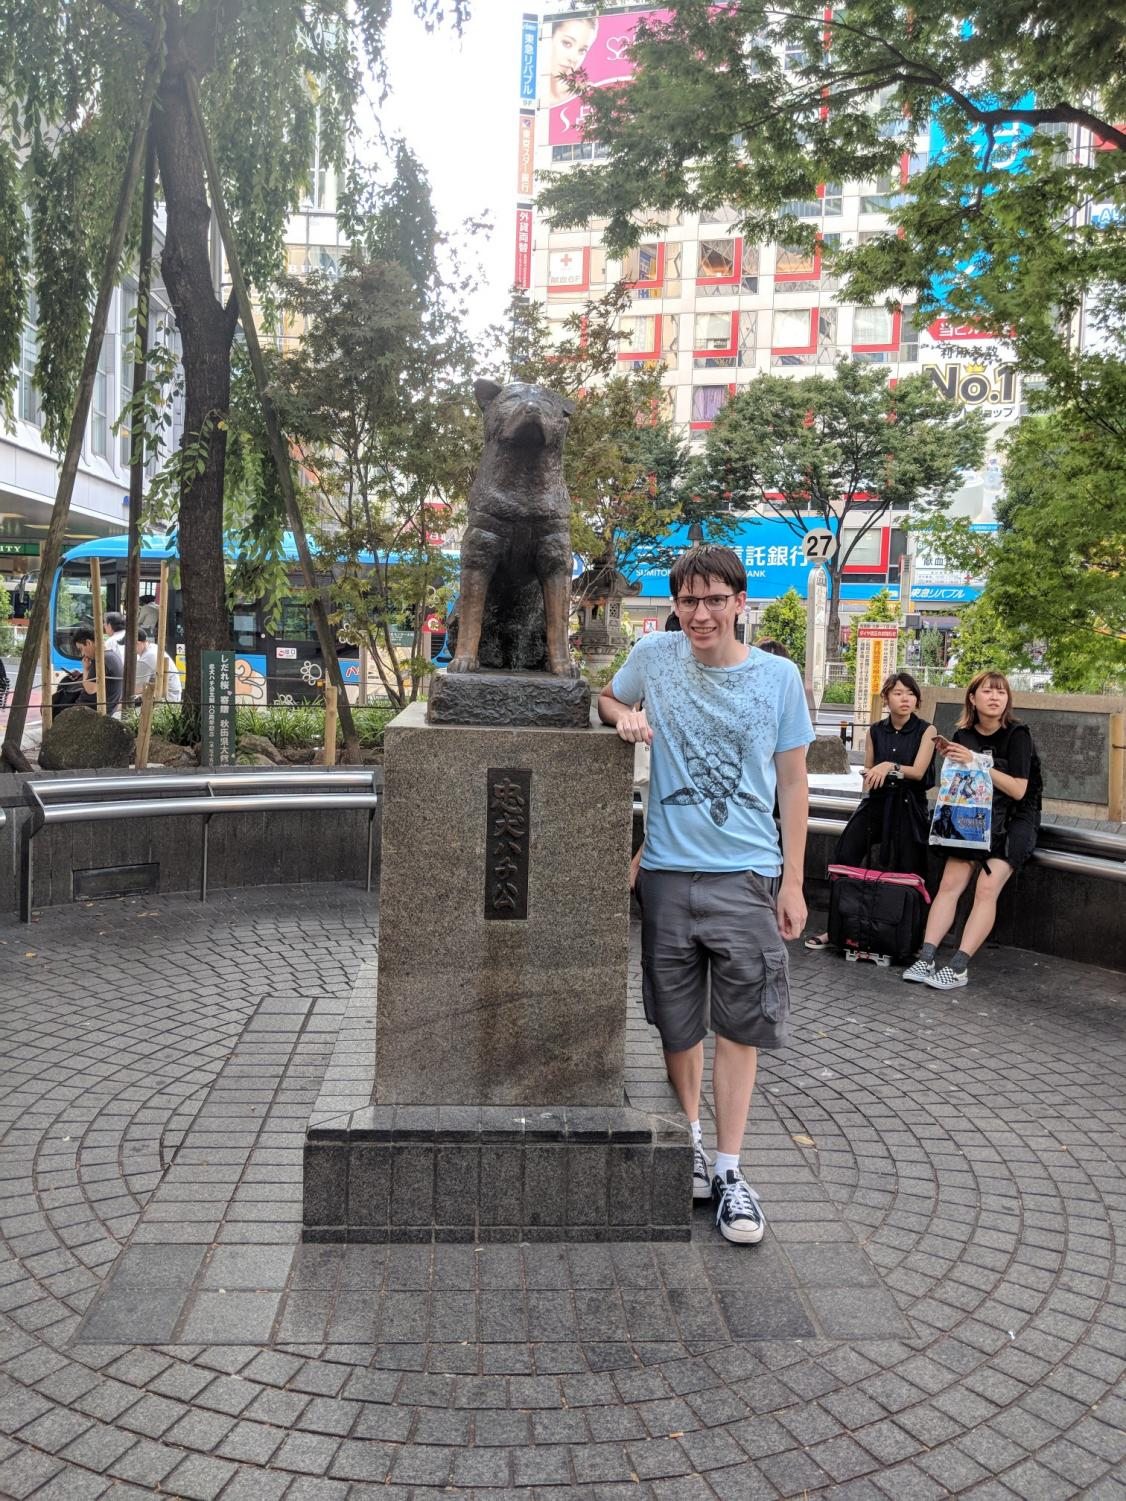 Junior Ryan Wasil poses with a Hachiko dog statue at Shibuya Train Station in Japan, where he studied abroad this summer.